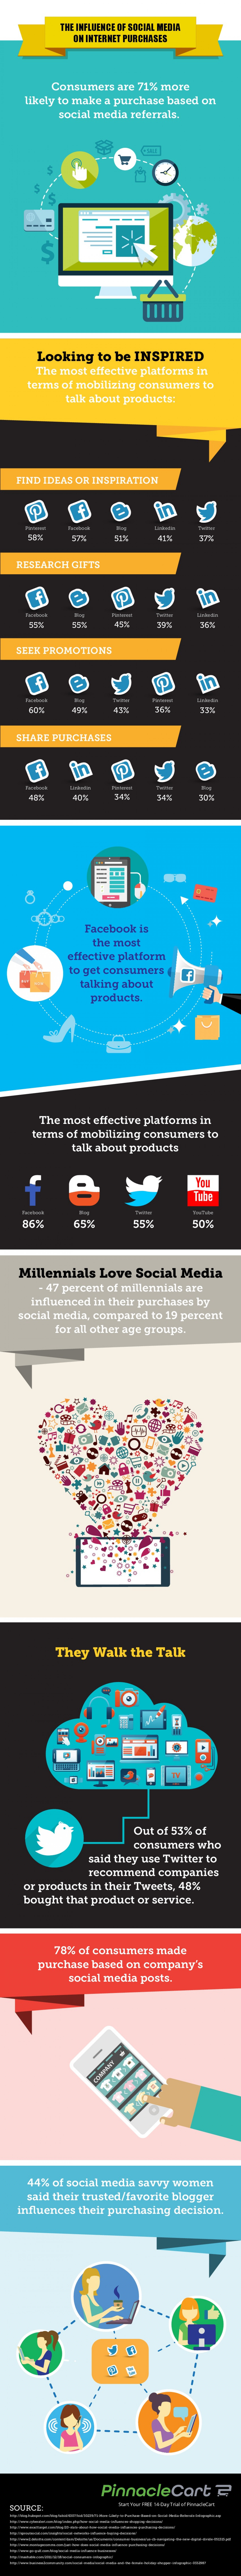 The Influence of Social Media on Internet Purchases Infographic